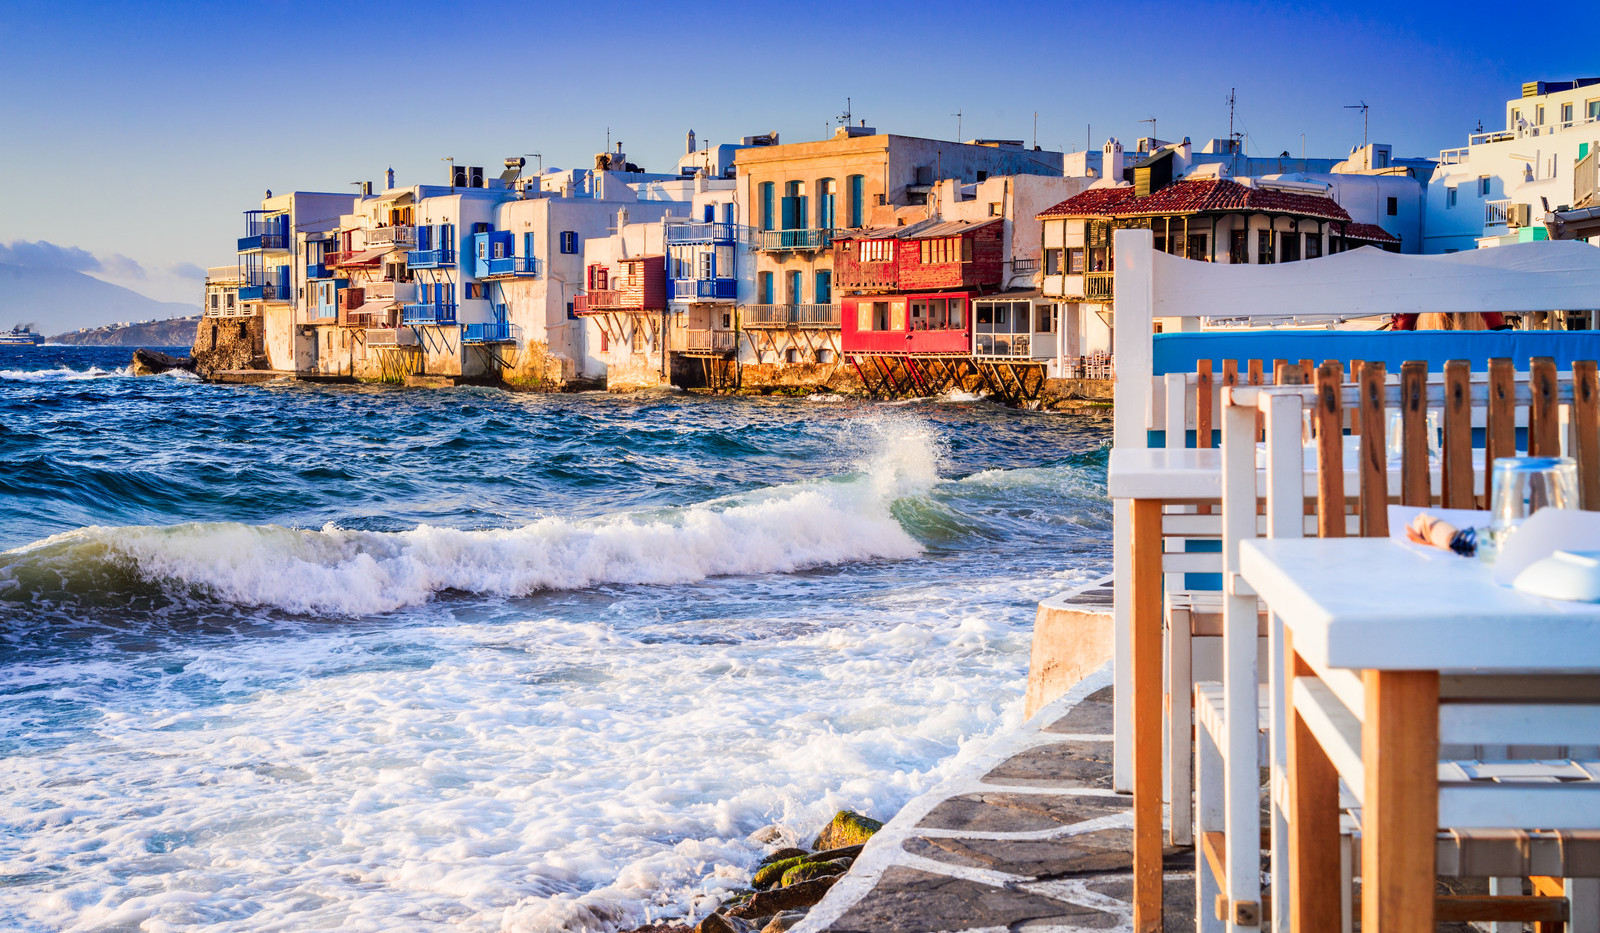 Canva - Mykonos, Greek Islands - Greece.